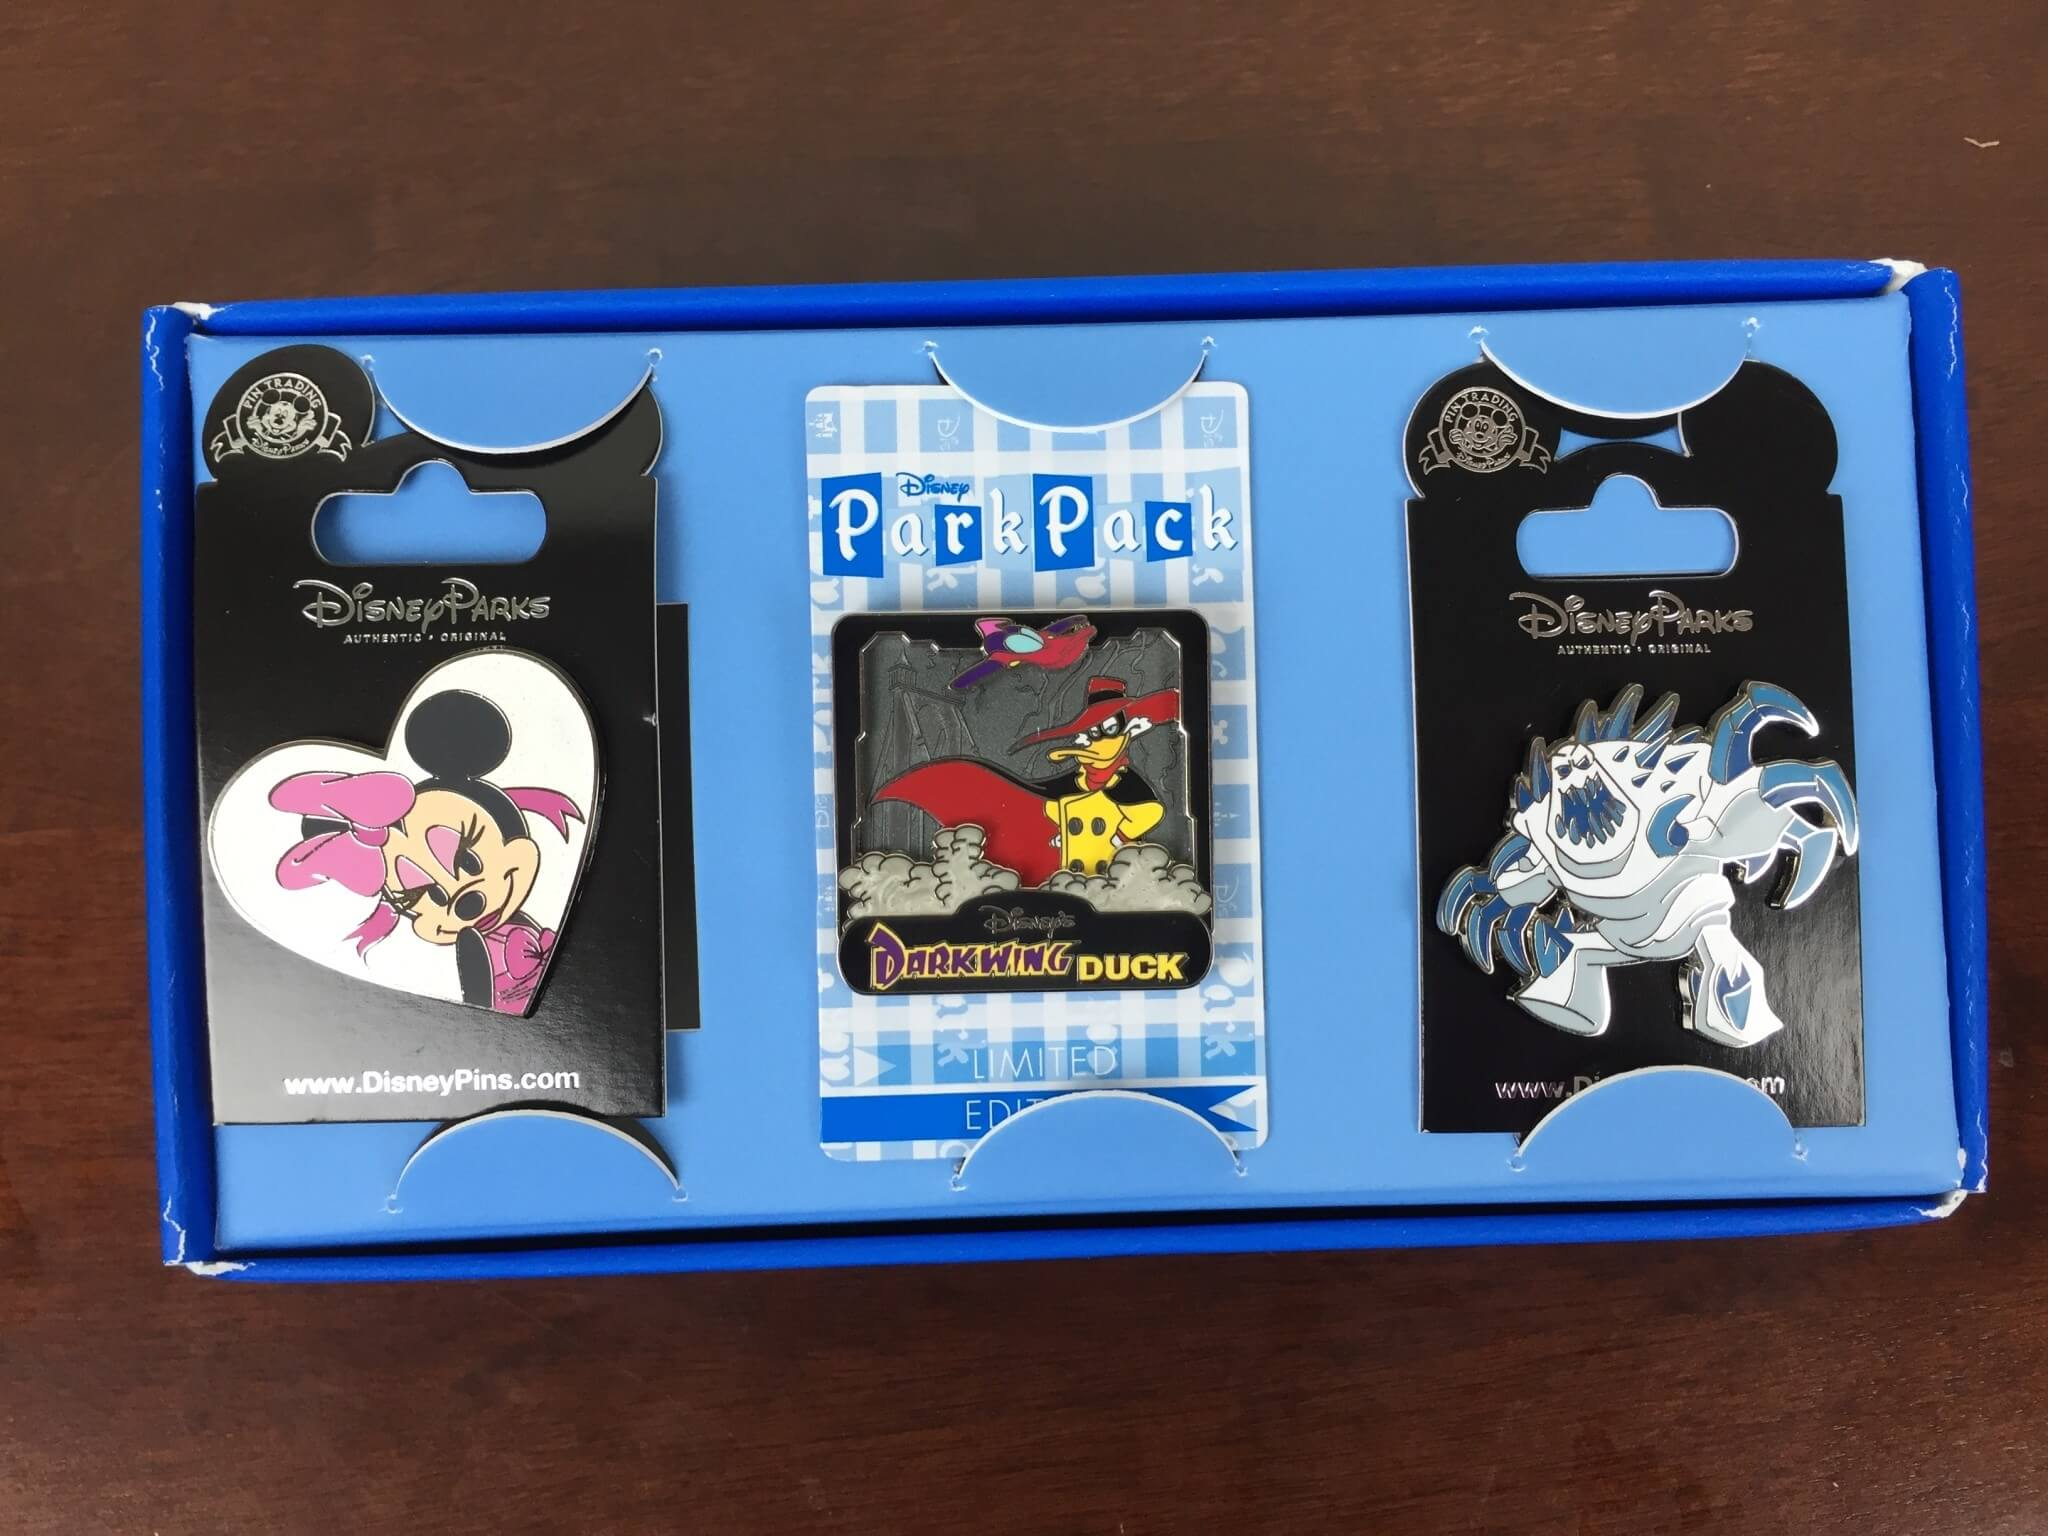 Disney Park Pack March 2016 Subscription Box Review – Pin Trading Edition